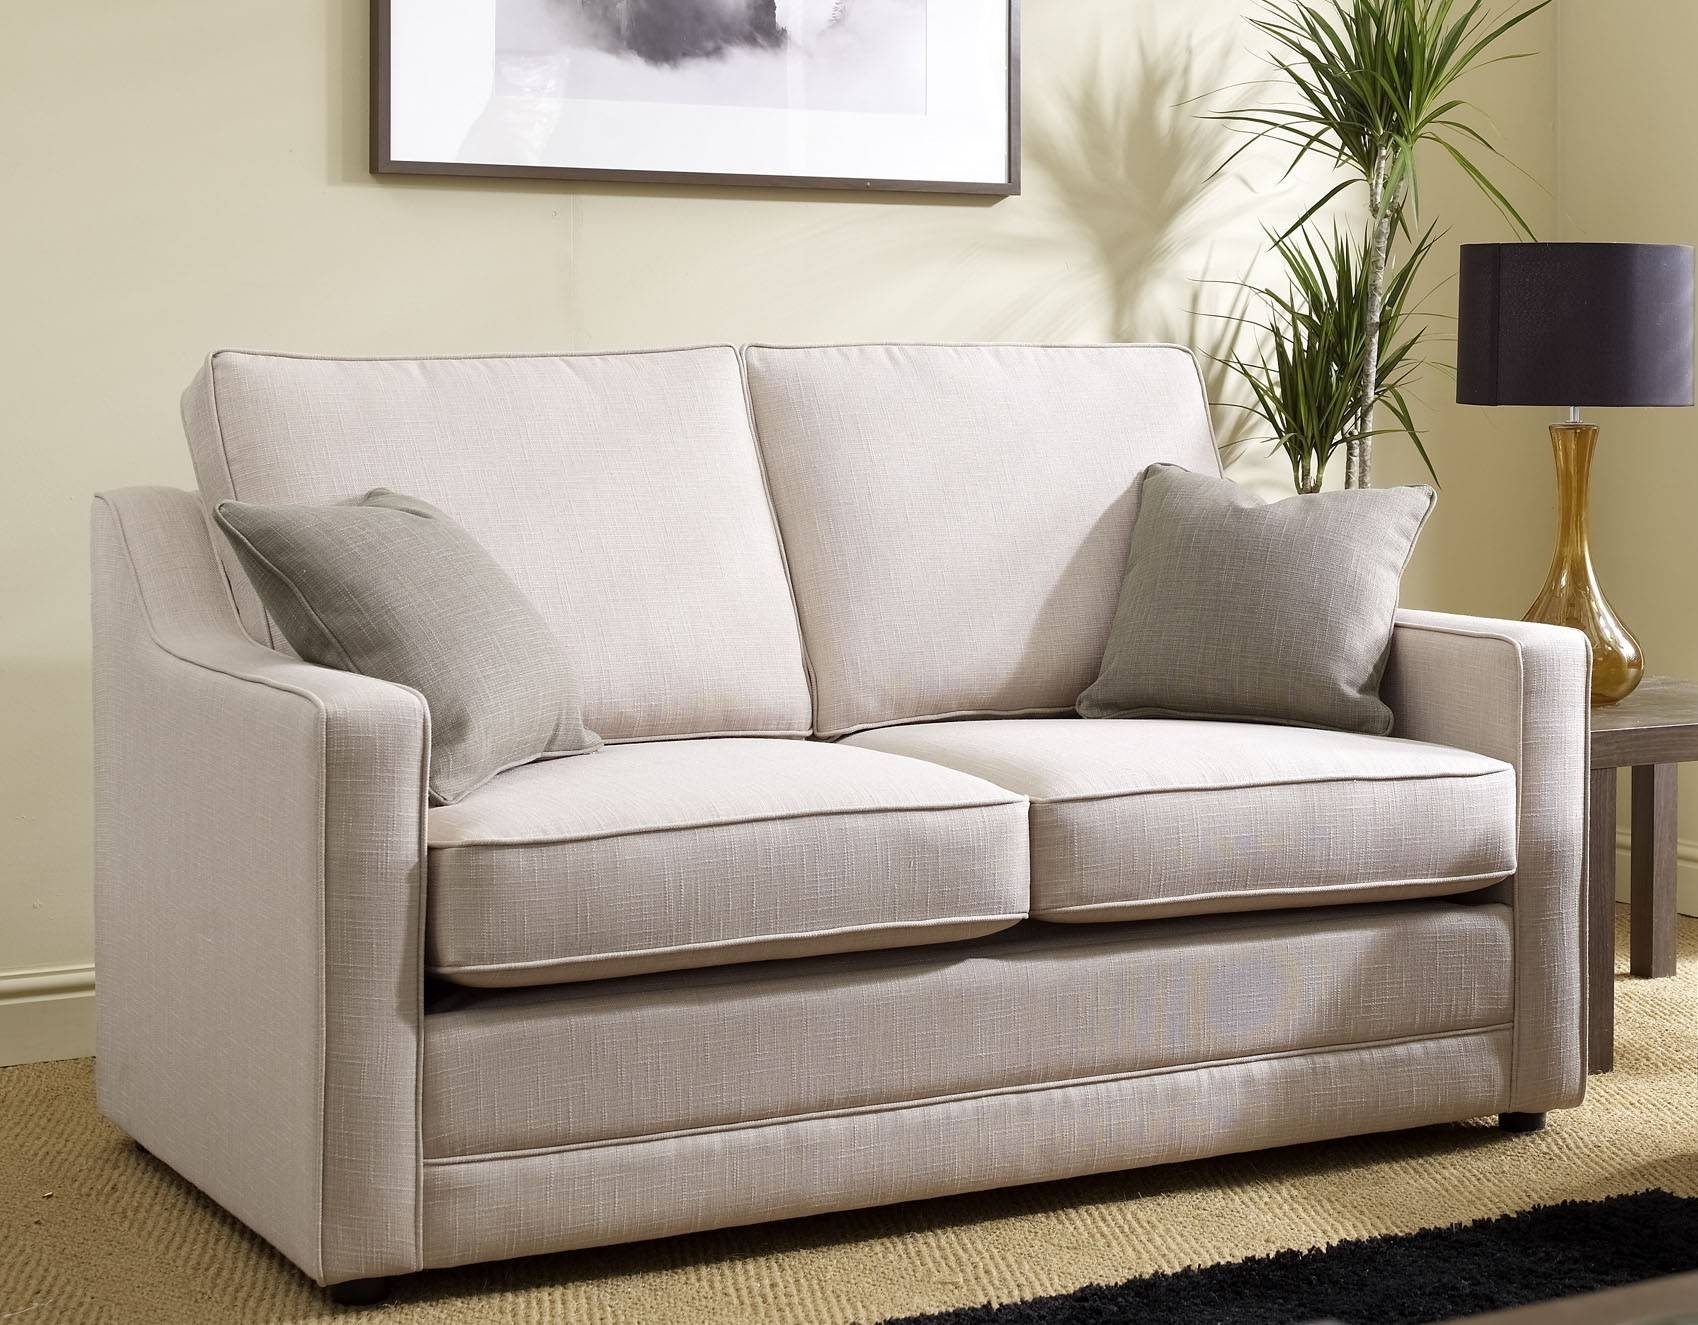 Small Sofa Beds For Small Rooms | Tehranmix Decoration intended for Mini Sofa Sleepers (Image 16 of 30)